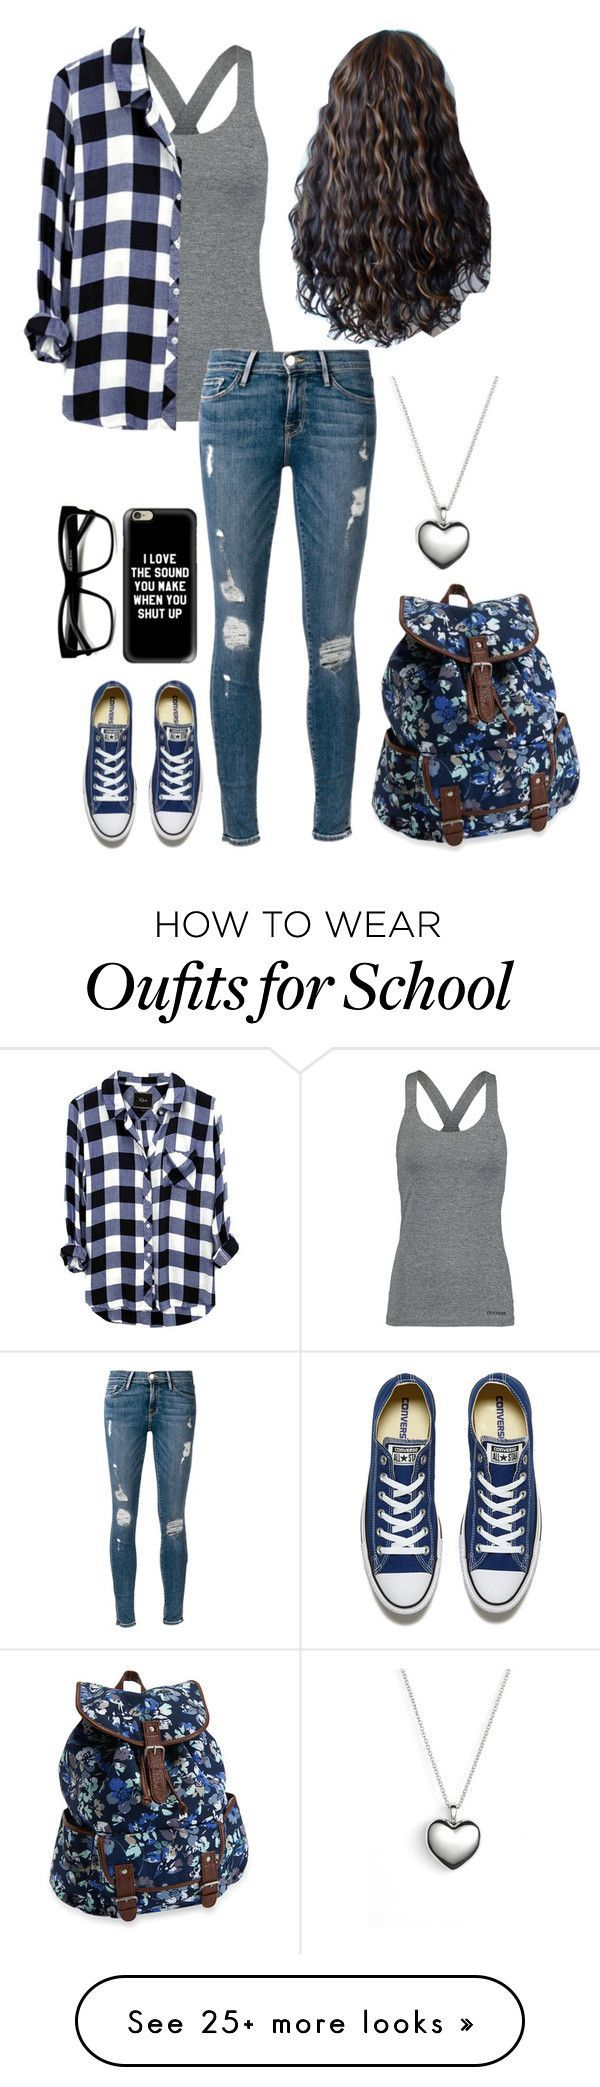 """""""School"""" by too-many-fandoms-chic on Polyvore featuring Ivy Park, Frame Denim, Converse, Retrò, Casetify, Aéropostale and Pandora"""